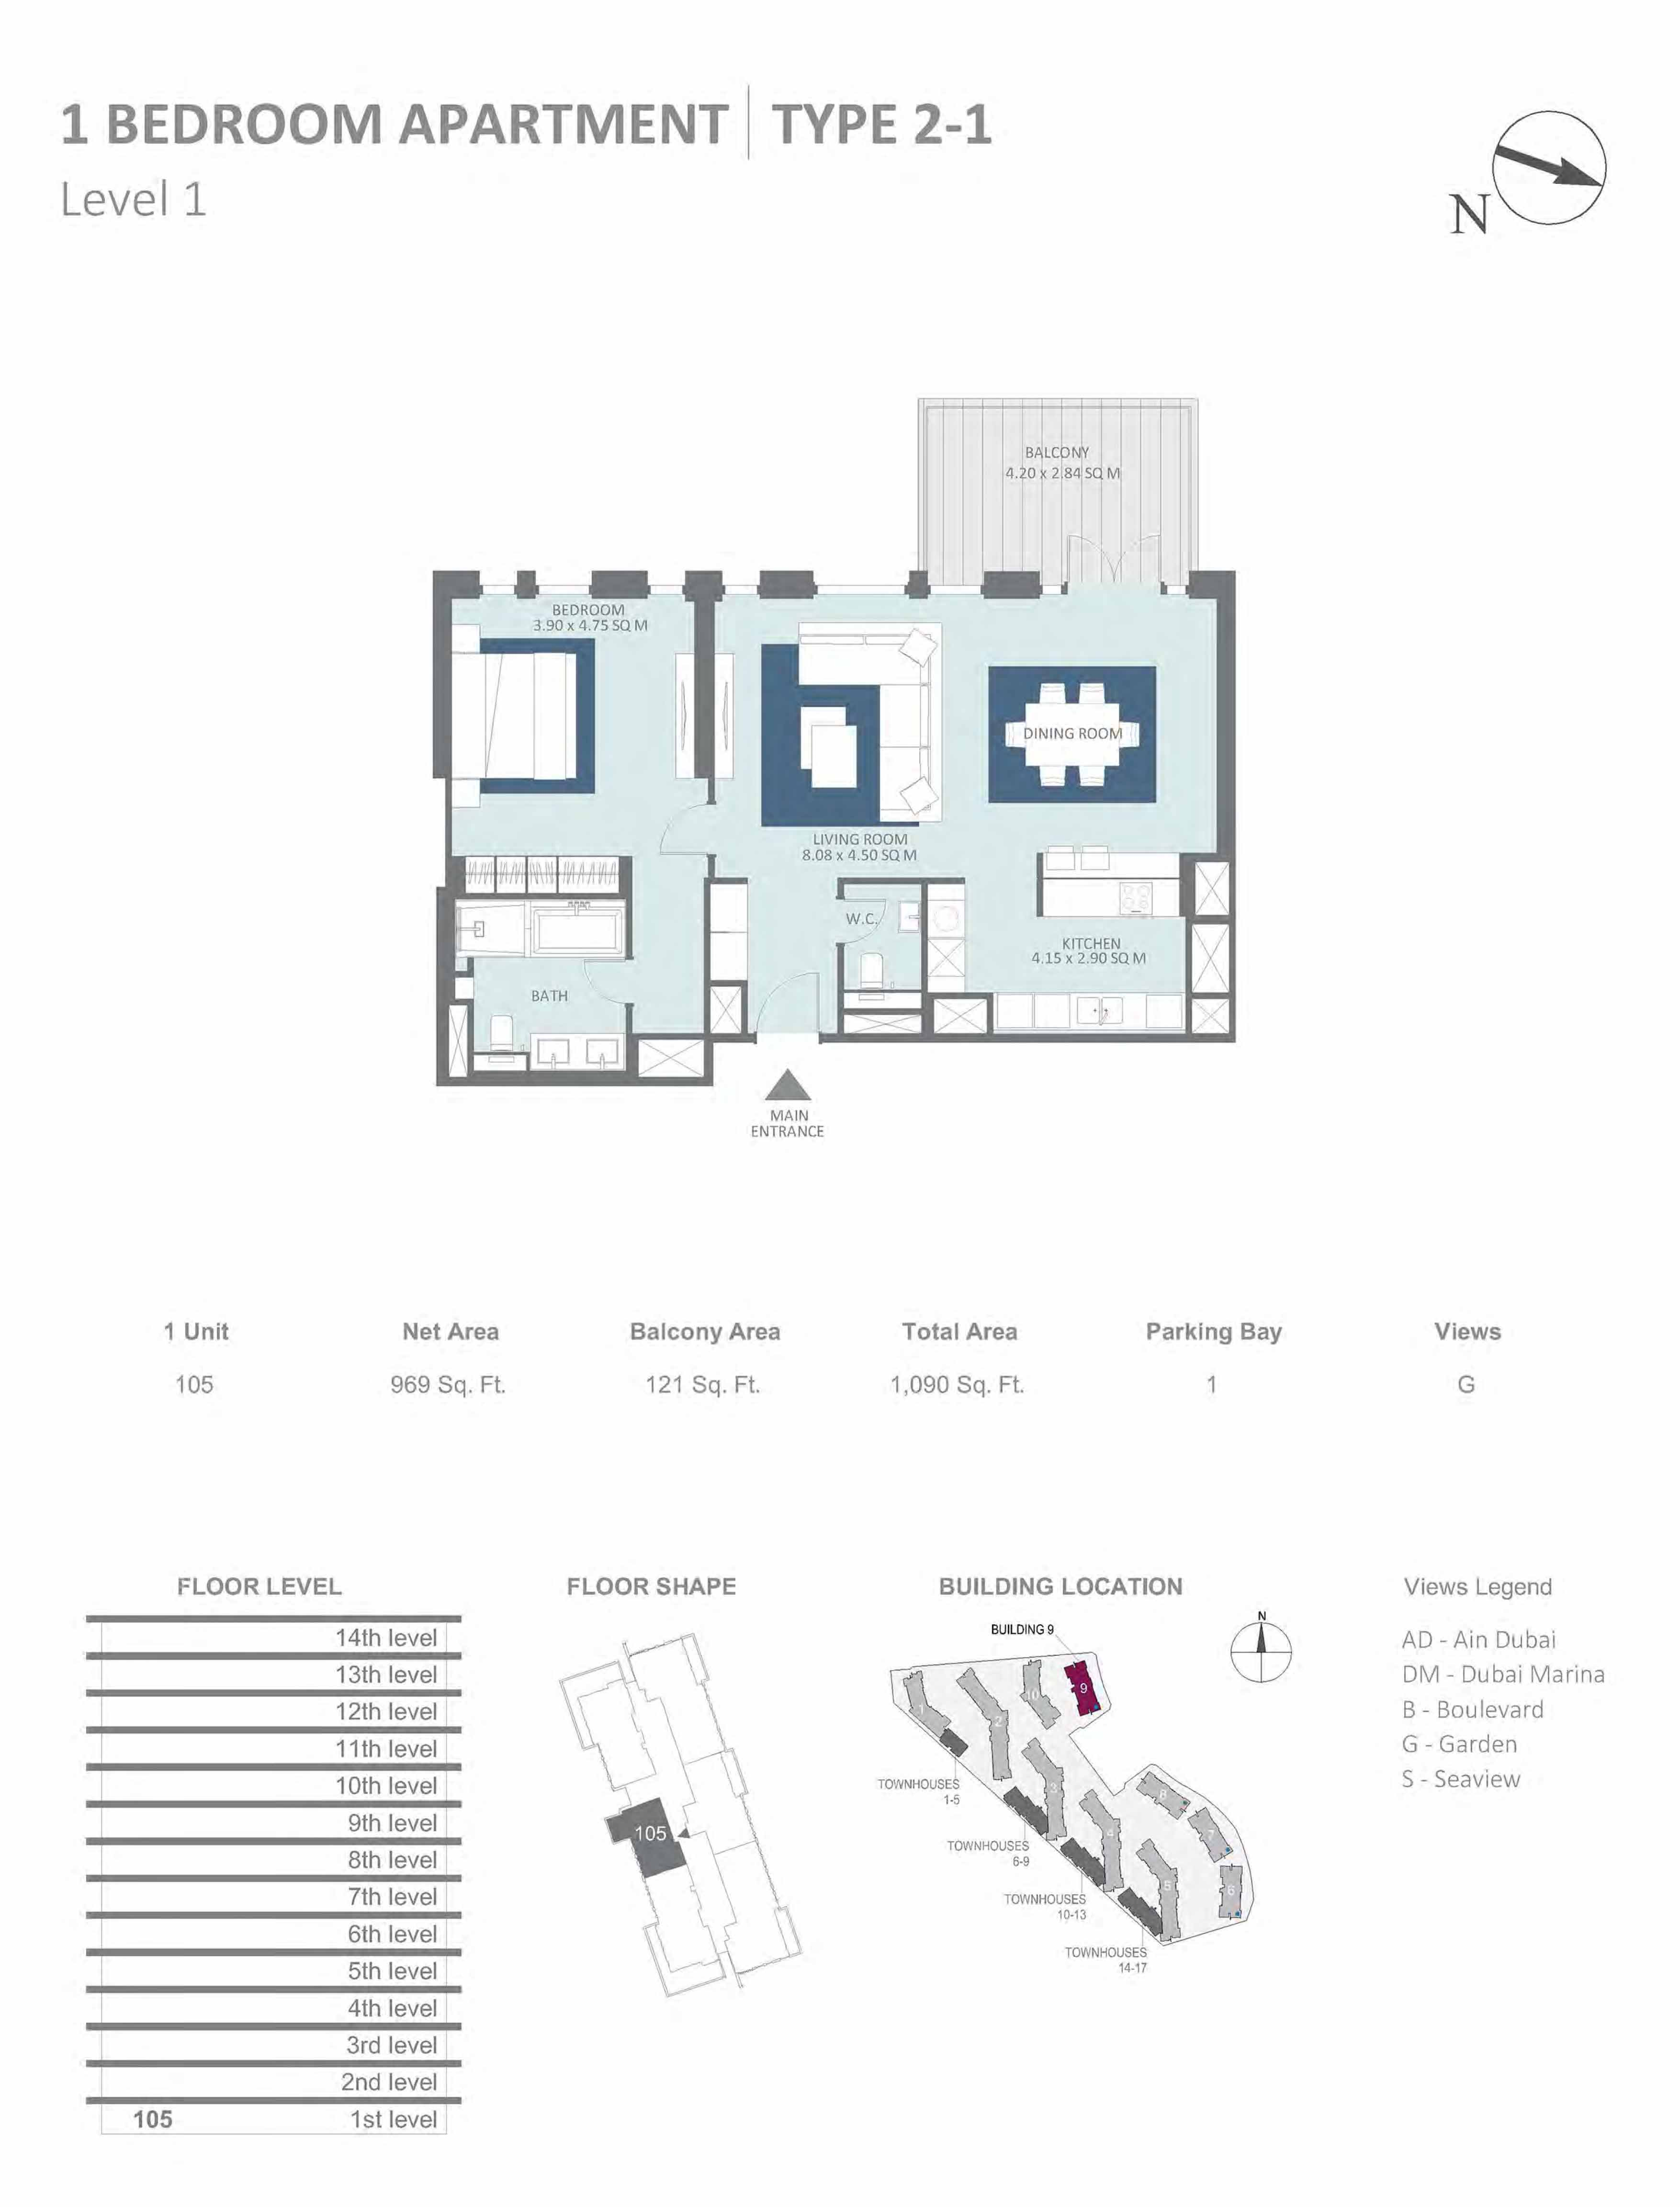 Building 9 - 1 Bedroom Type 2-1, Level 1 Size 1090  sq. ft.